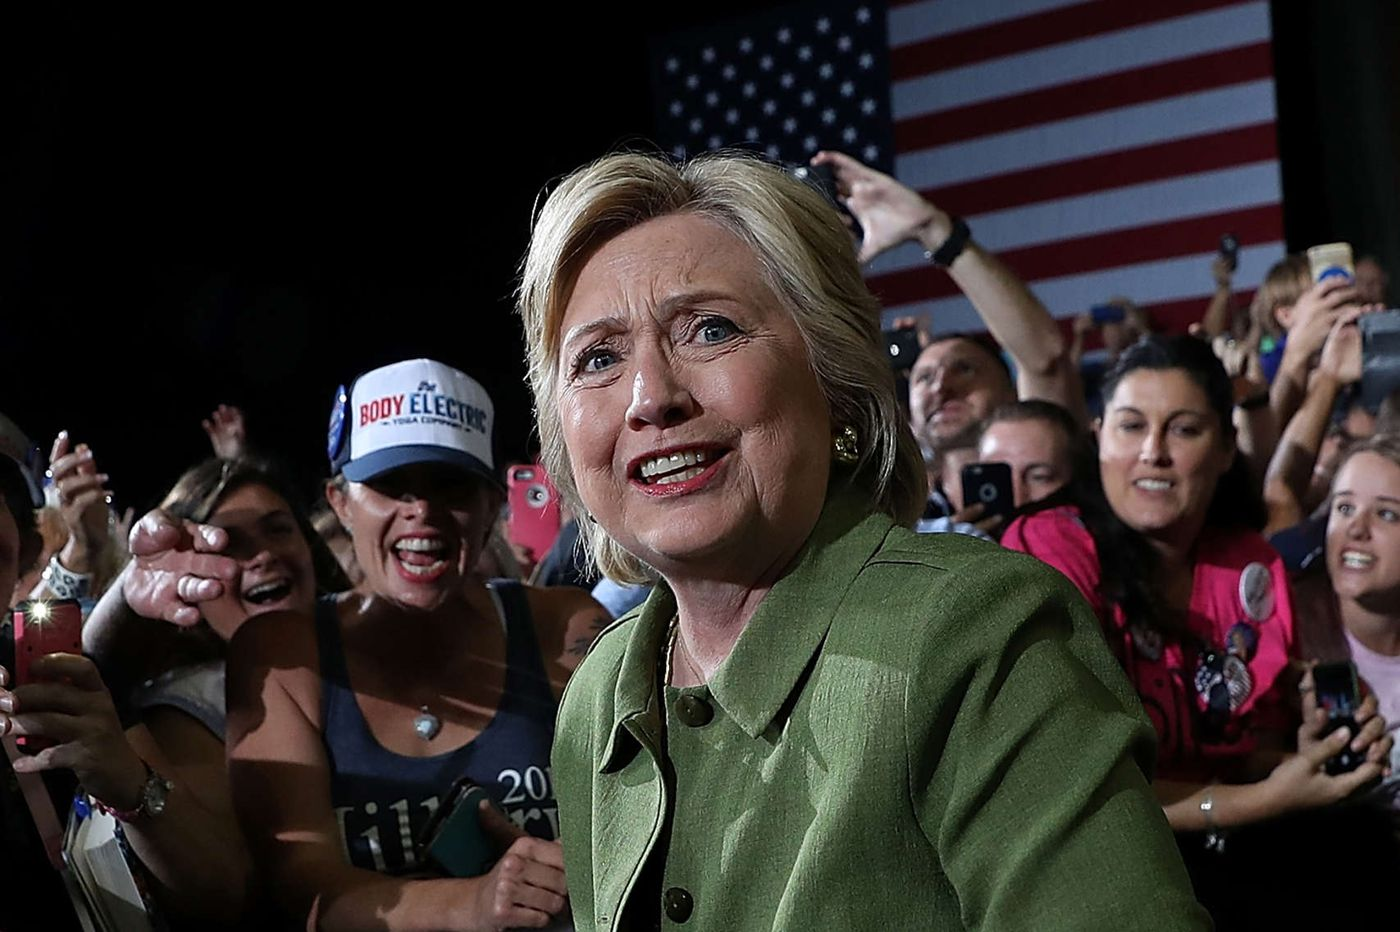 DNC Fashion: Why what Hillary Clinton wears matters